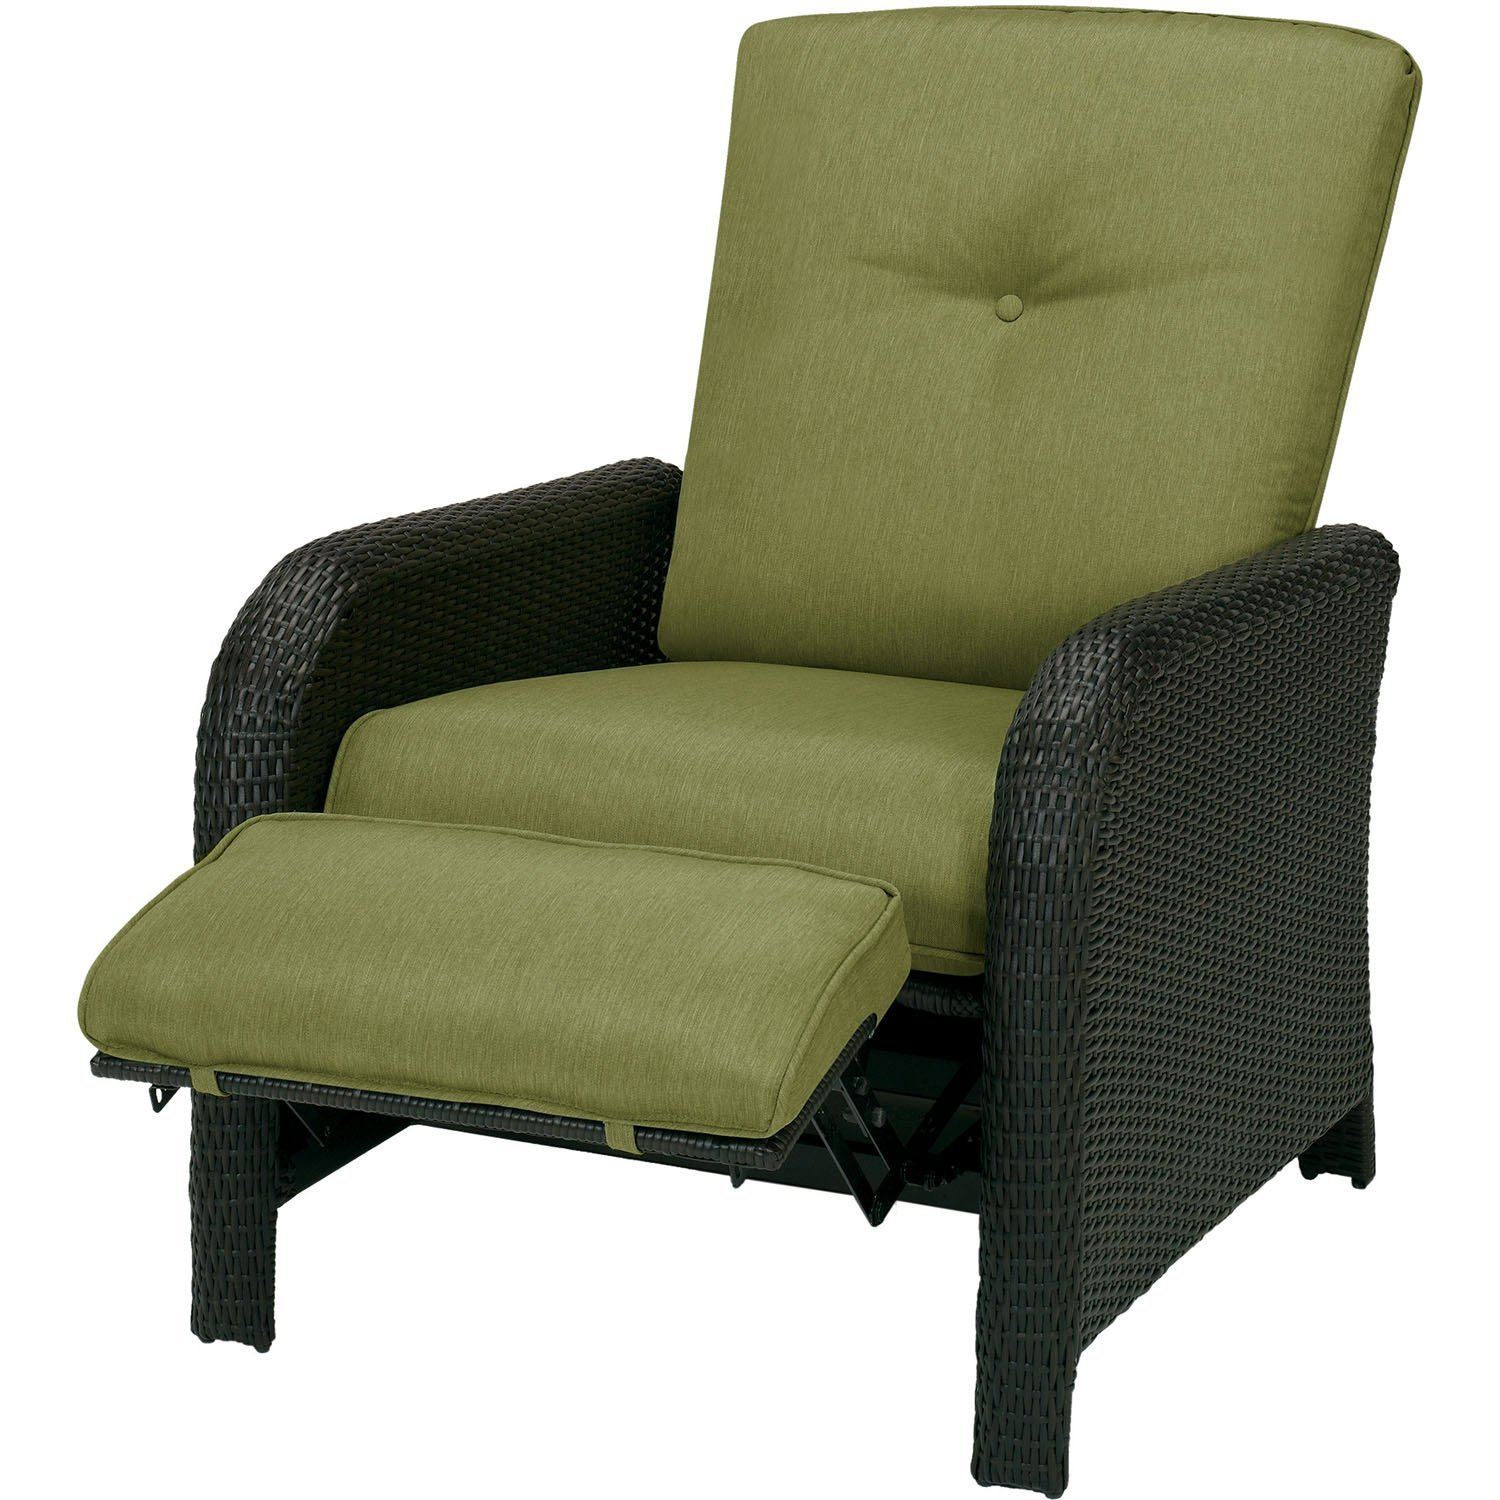 Best value outdoor wicker recliners the best recliner for Stylish lounge chairs